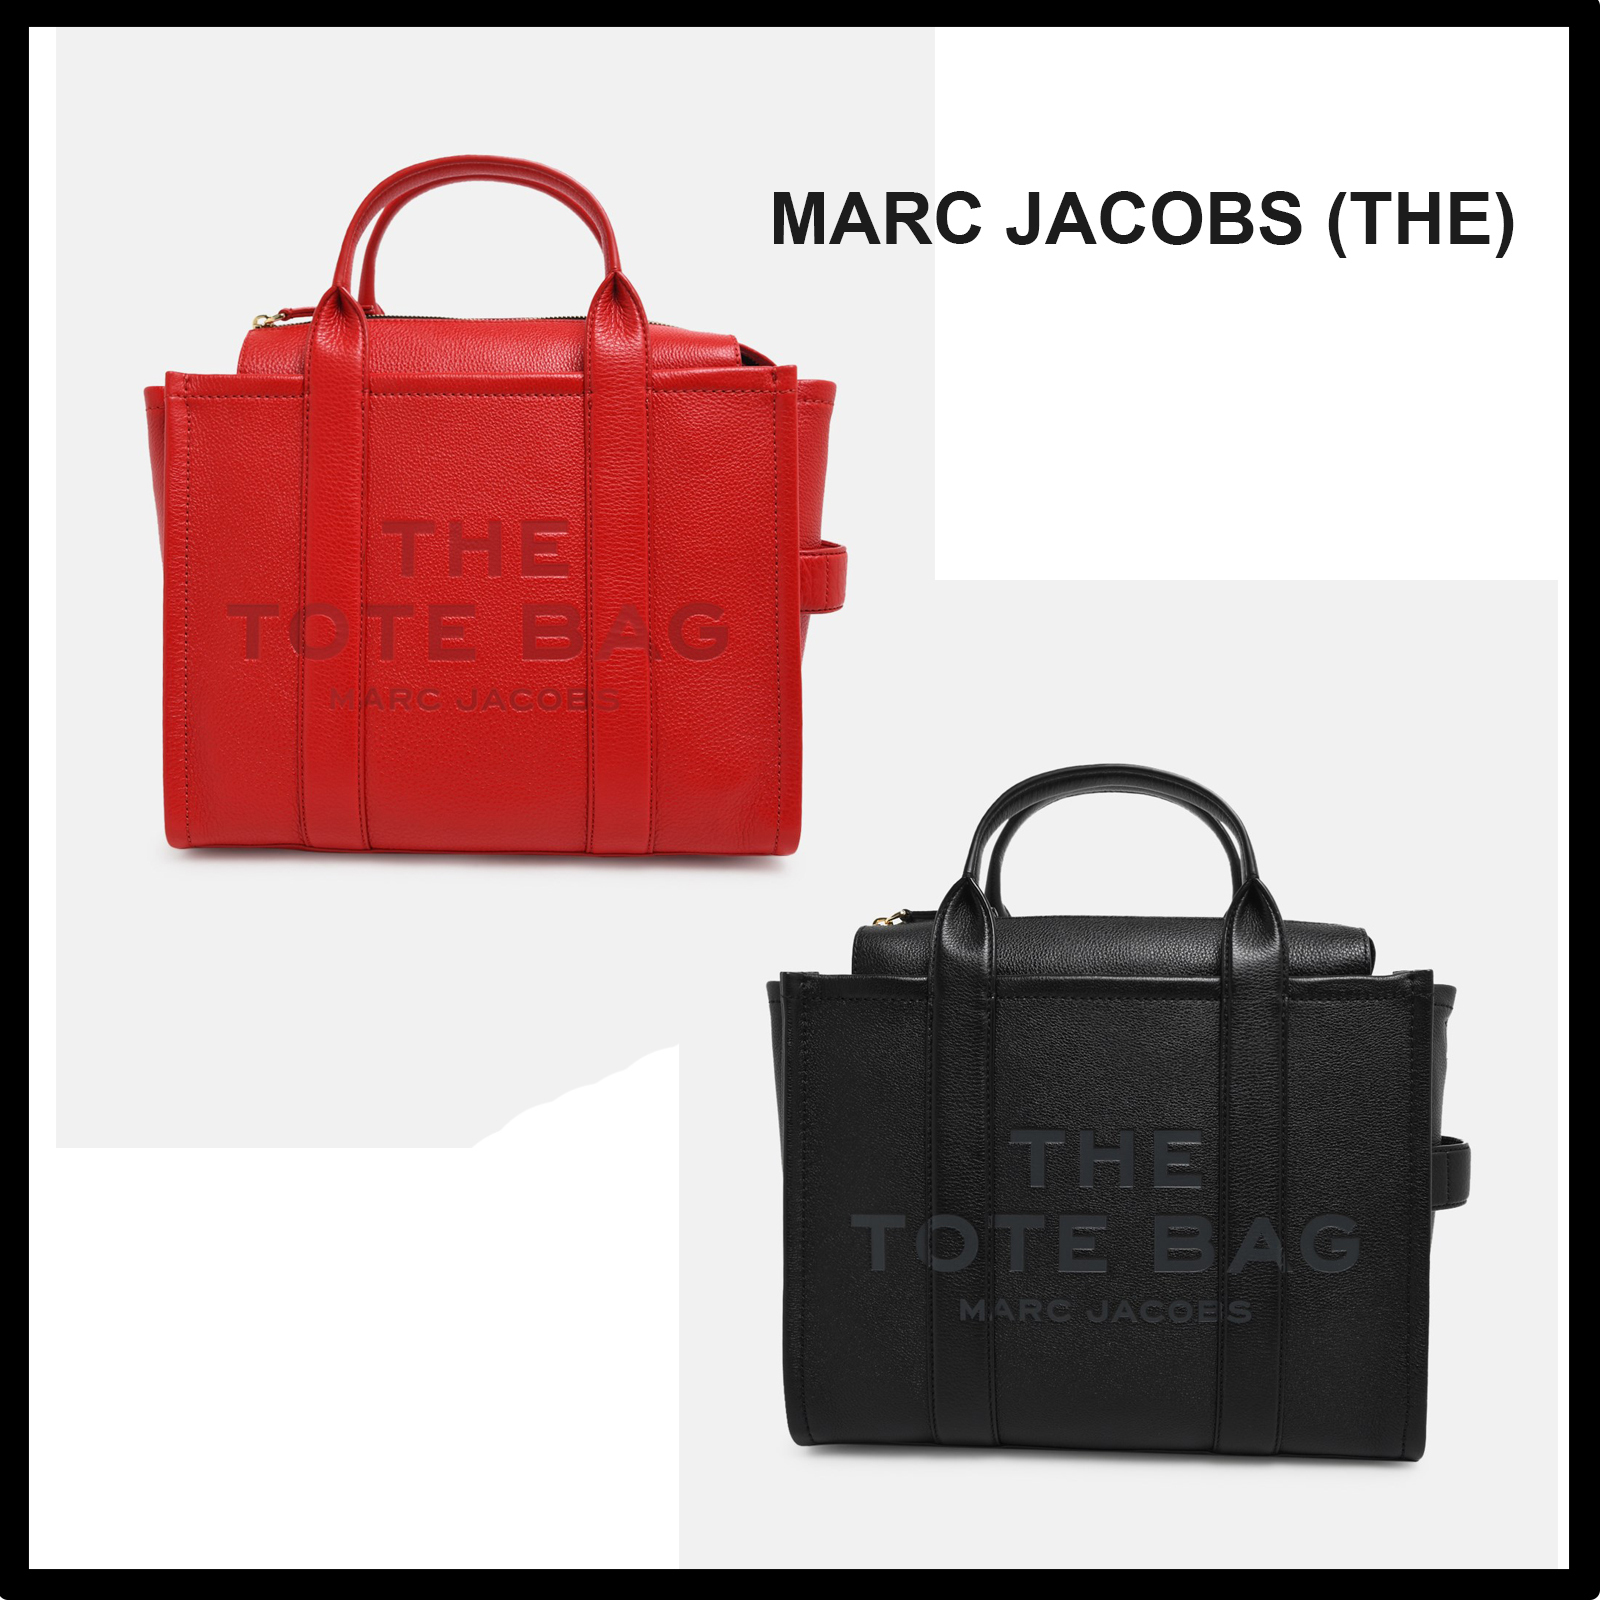 MARC JACOBS (THE) ★ 小さな赤いトラベラーバッグ (MARC JACOBS/バッグ・カバンその他) H004L01PF21 617